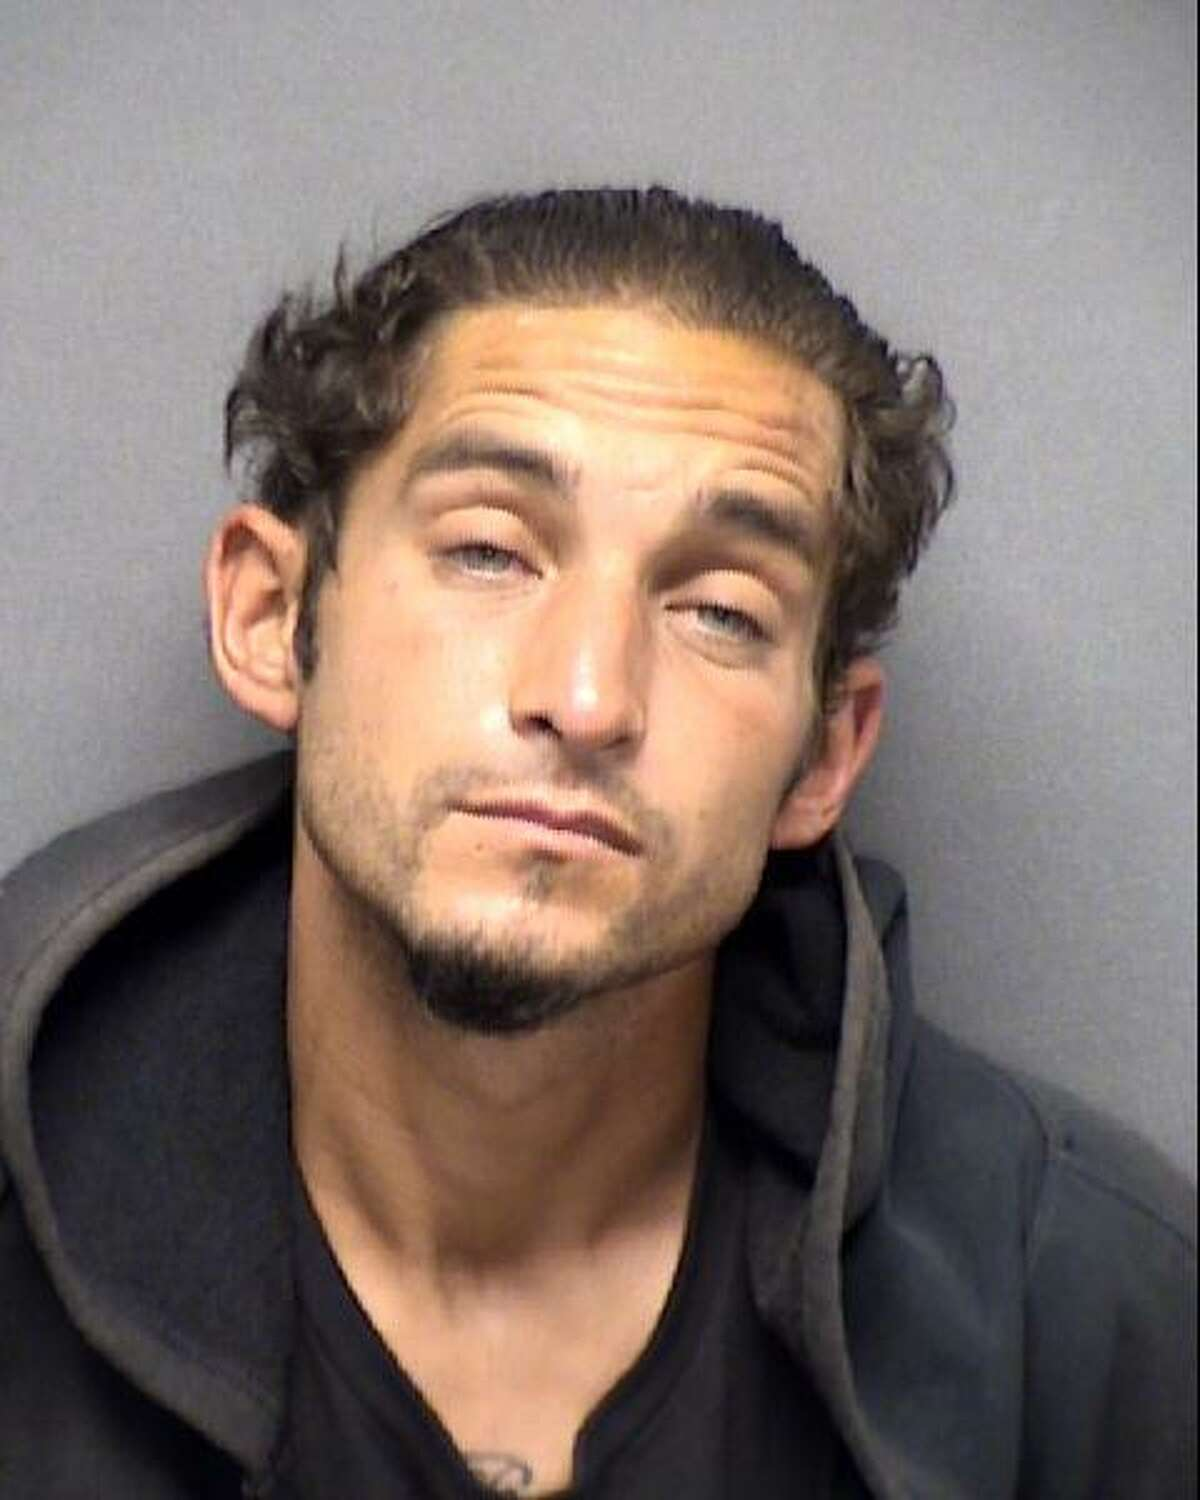 Inmate Justin Martinez, 36, is charged with escape after he was apprehended Friday while attempting to run from the Bexar County Jail.